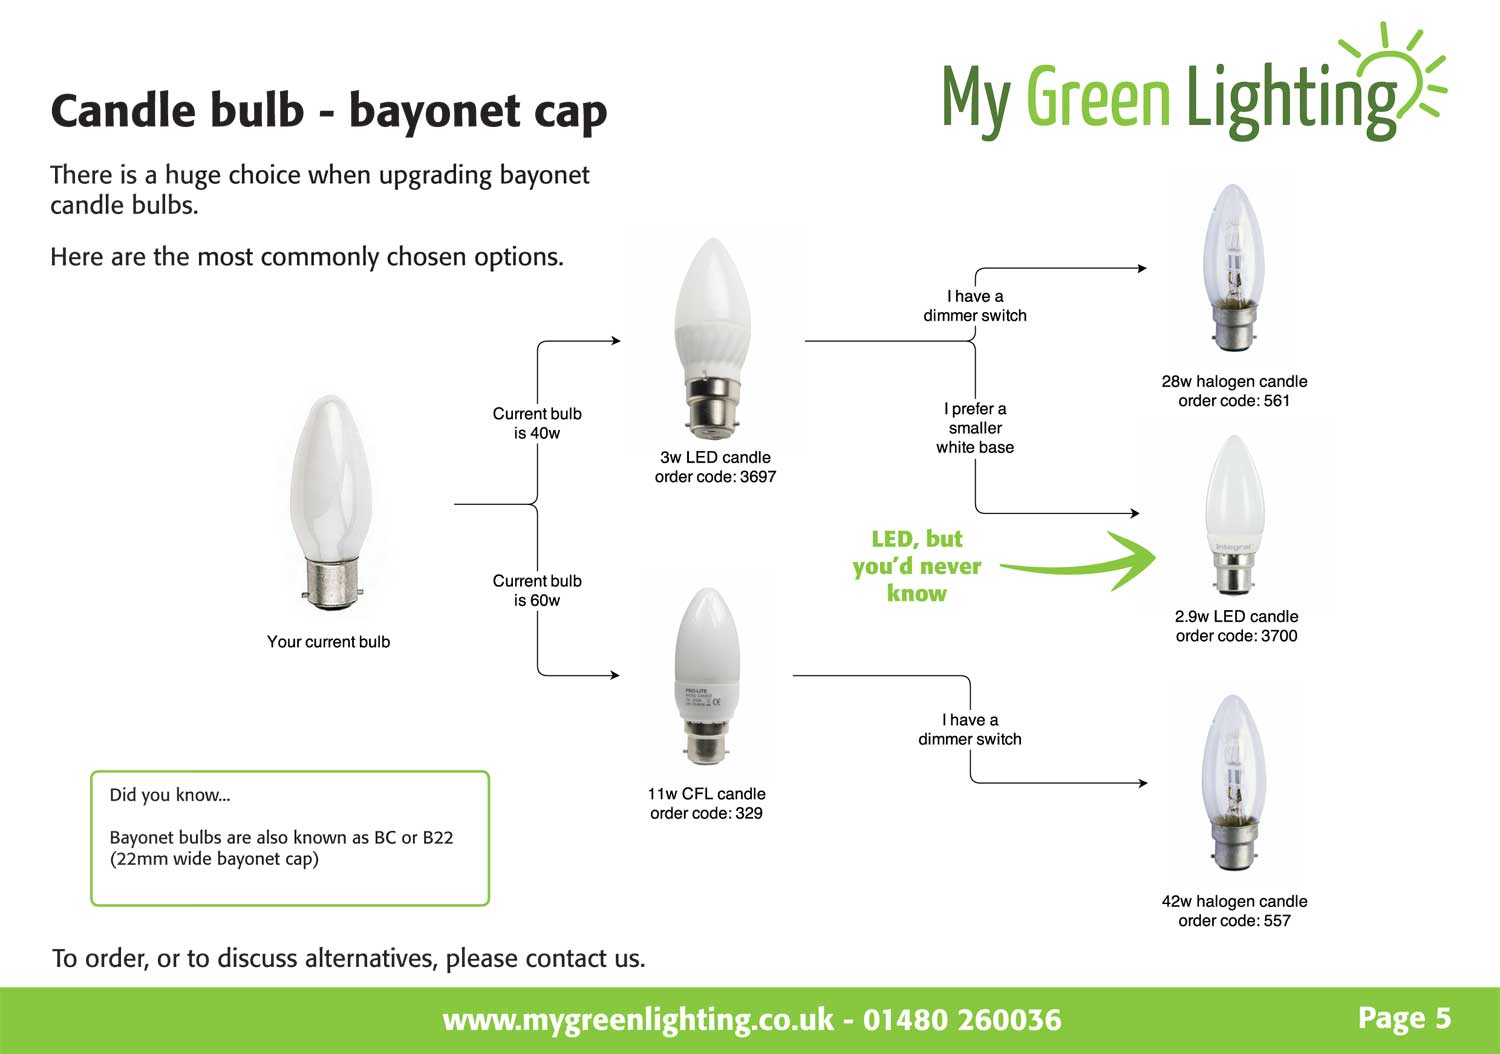 Candle bayonet bulbs from the Simple Energy Saving Guide to replacing common household bulbs